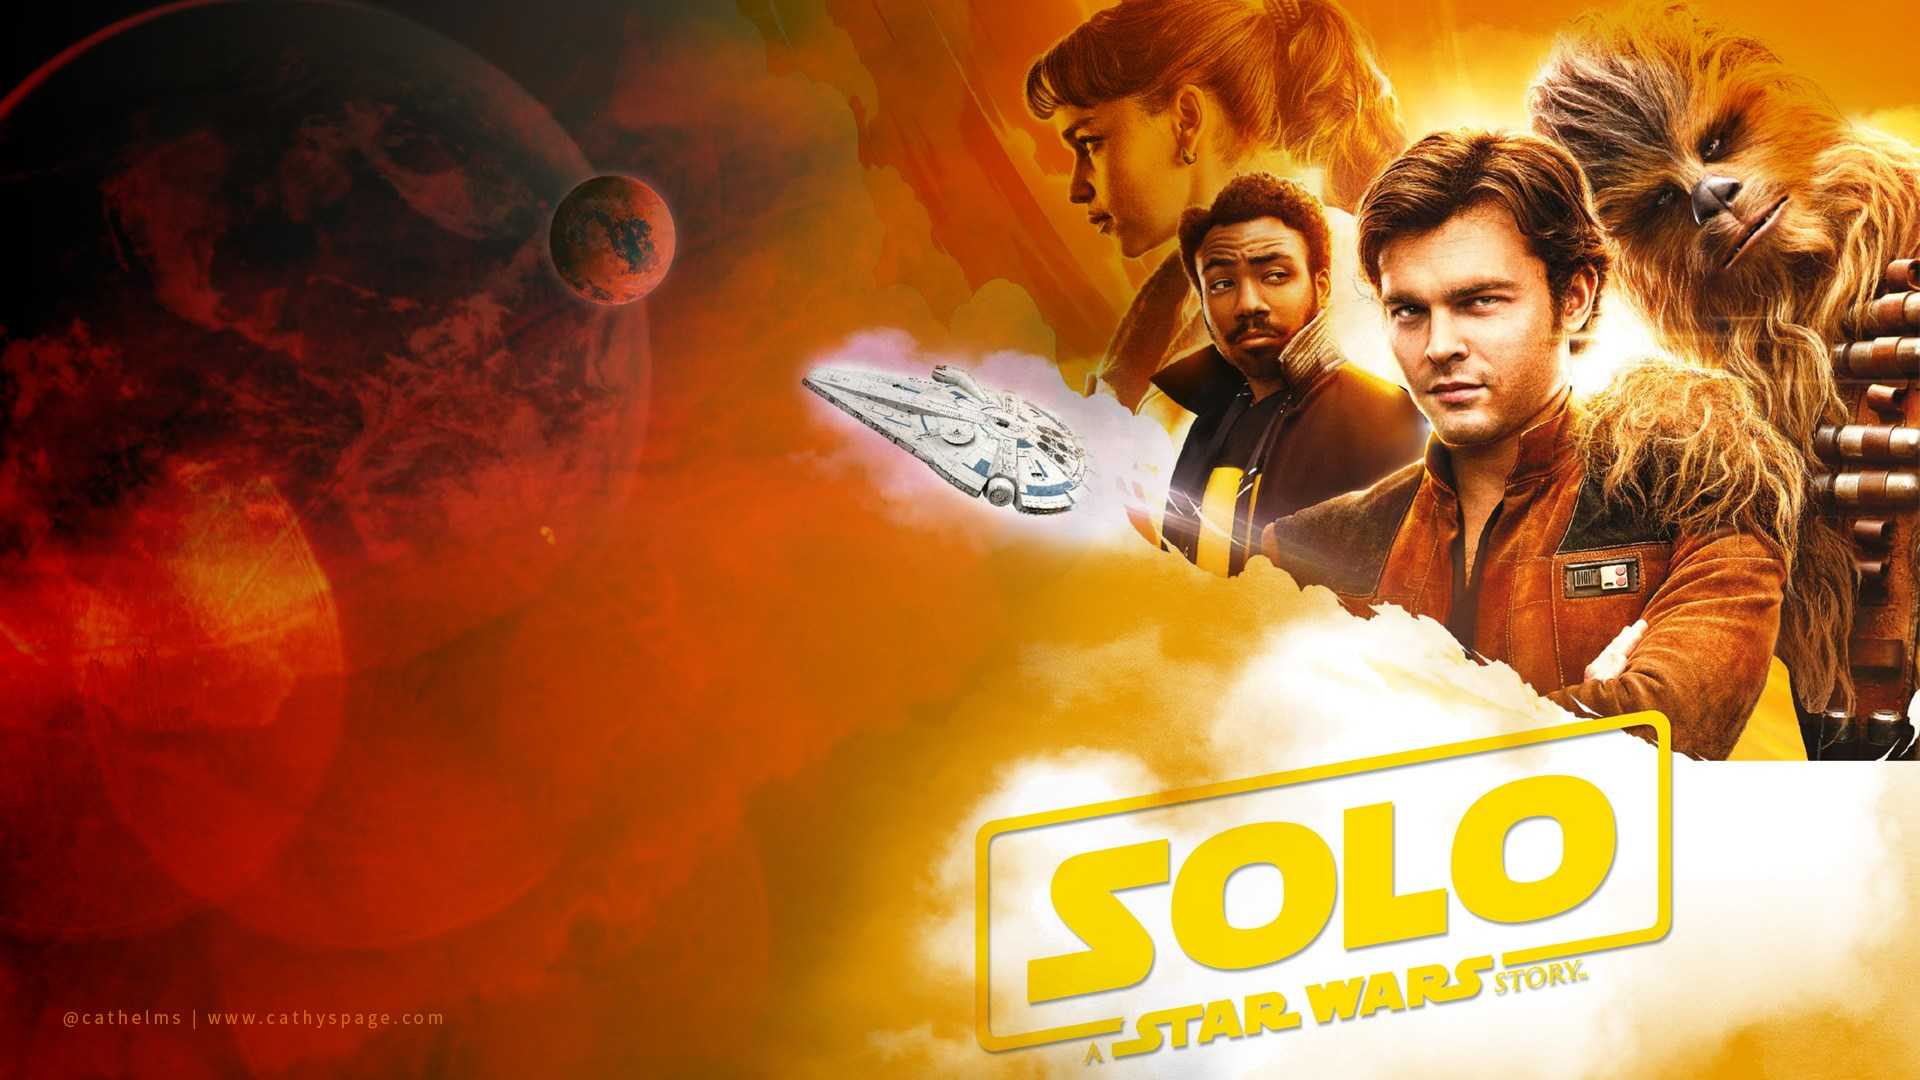 solo_-a-star-wars-story-wallpapers-29901-34129.jpg (342.91 Kb)